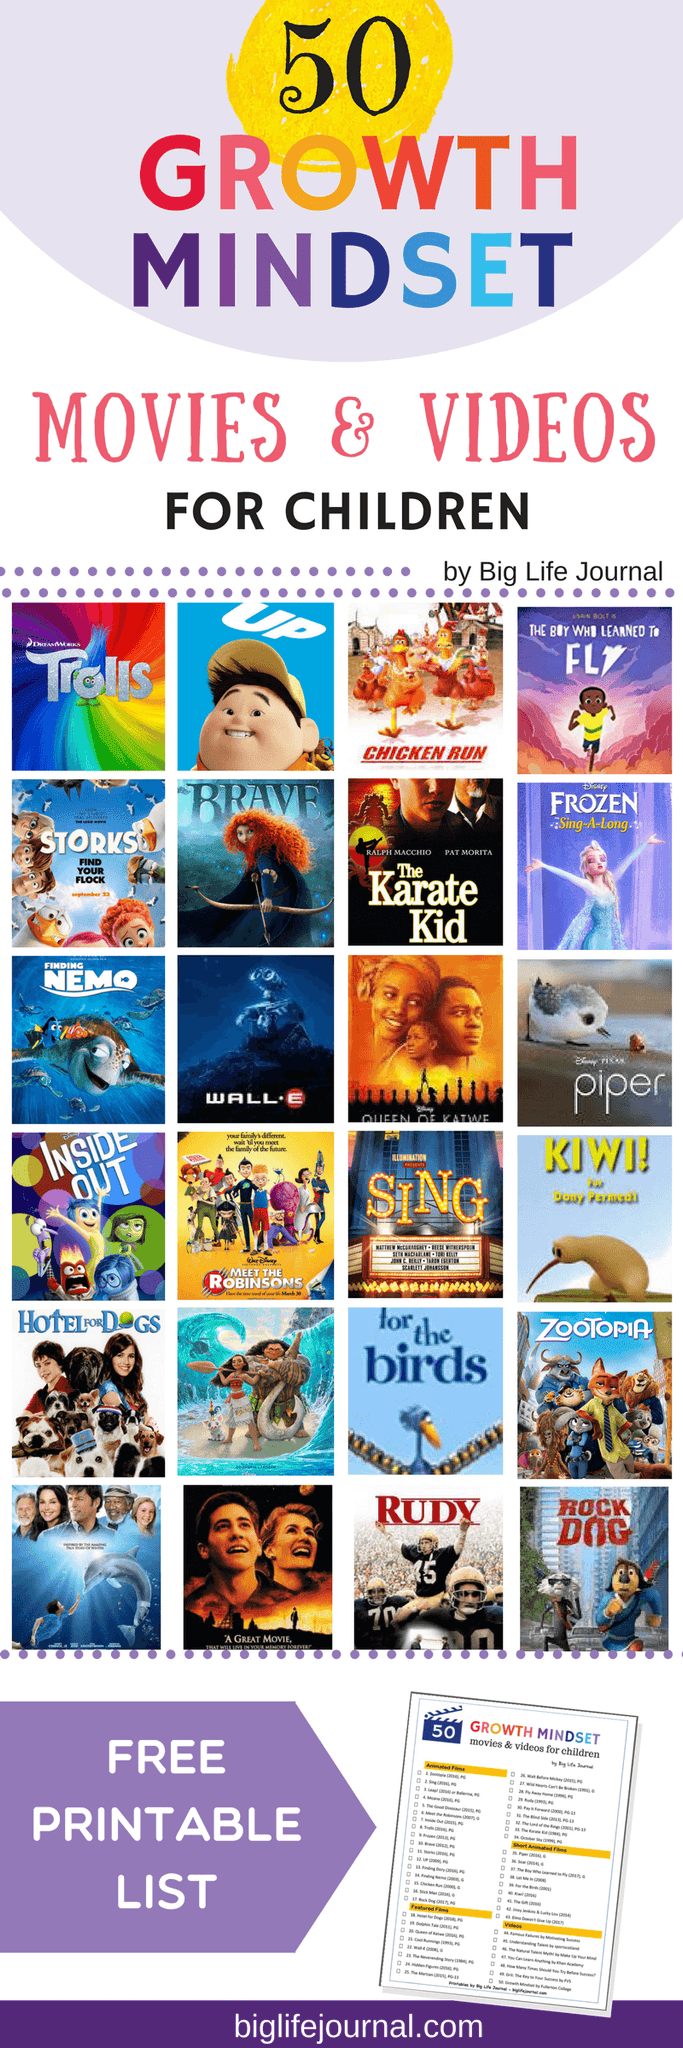 A list of top 50 growth mindset movies and videos for children.